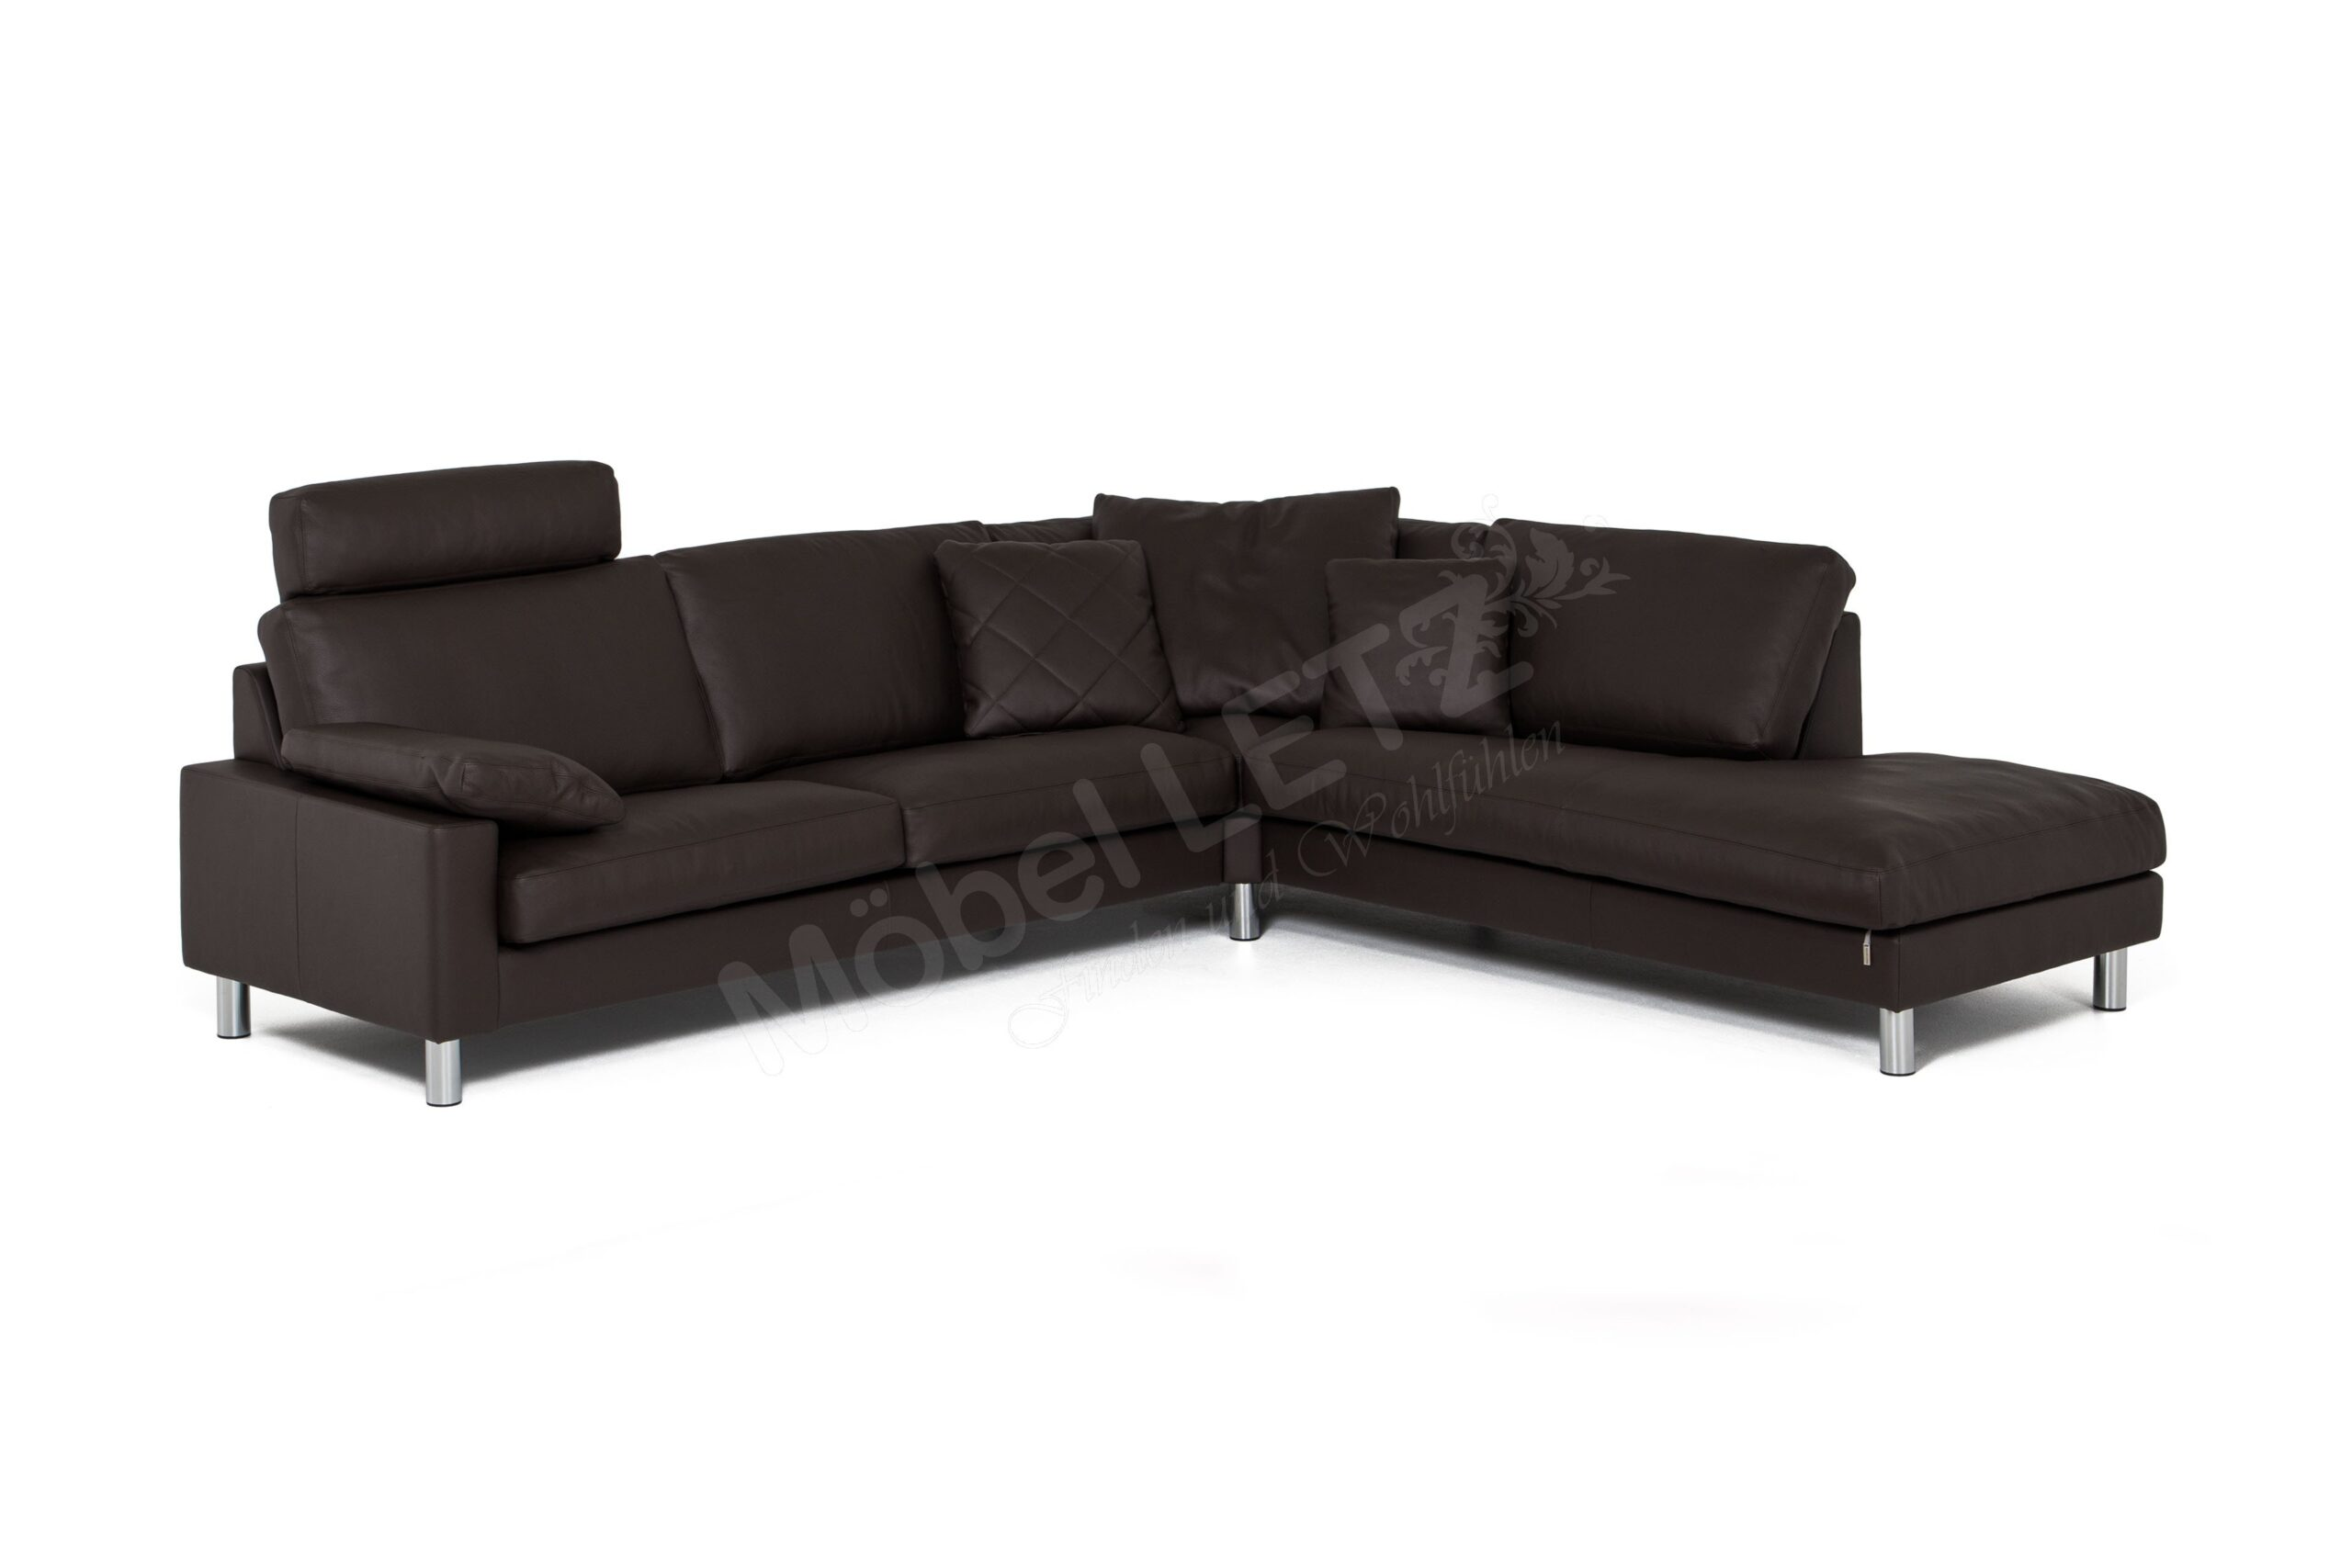 Full Size of Erpo Mbelwerk Cl 500 Ecksofa In Braun Mbel Letz Ihr Online Shop Stressless Sofa Halbrundes Big Poco Goodlife Hannover Grau Leder Megapol Lagerverkauf Sitzhöhe Sofa Erpo Sofa